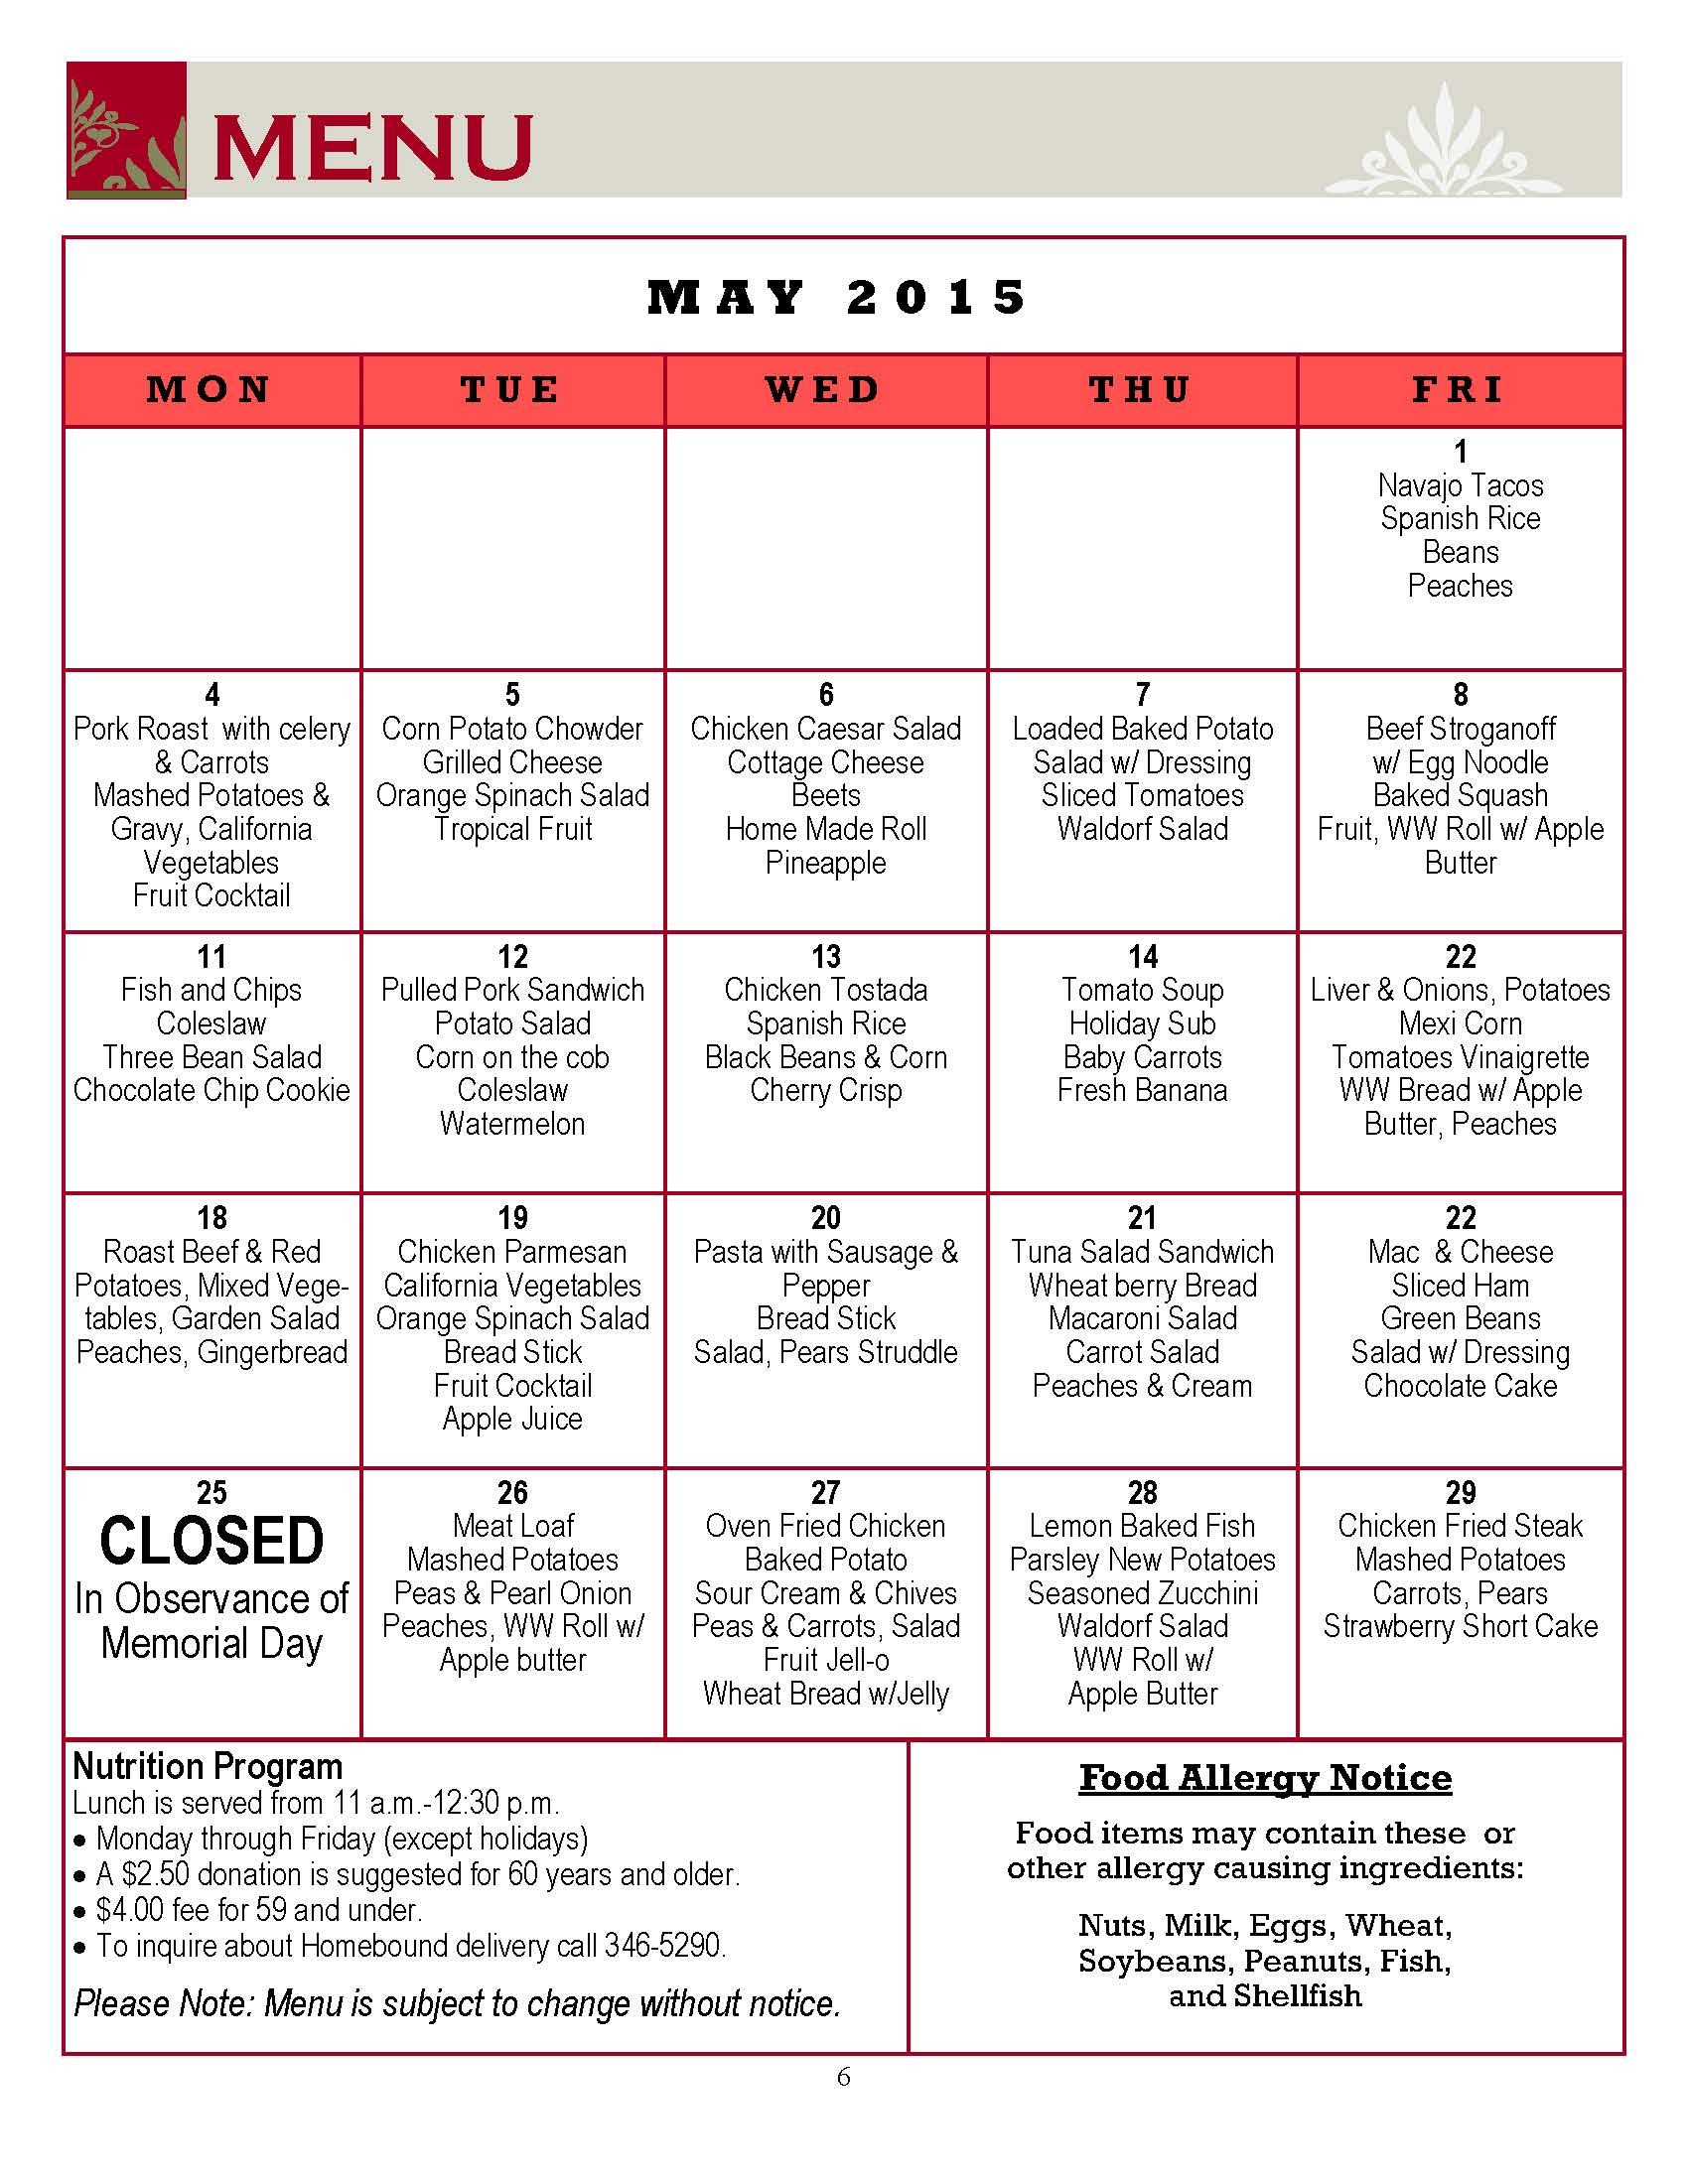 May 2015 Senior Center Menu